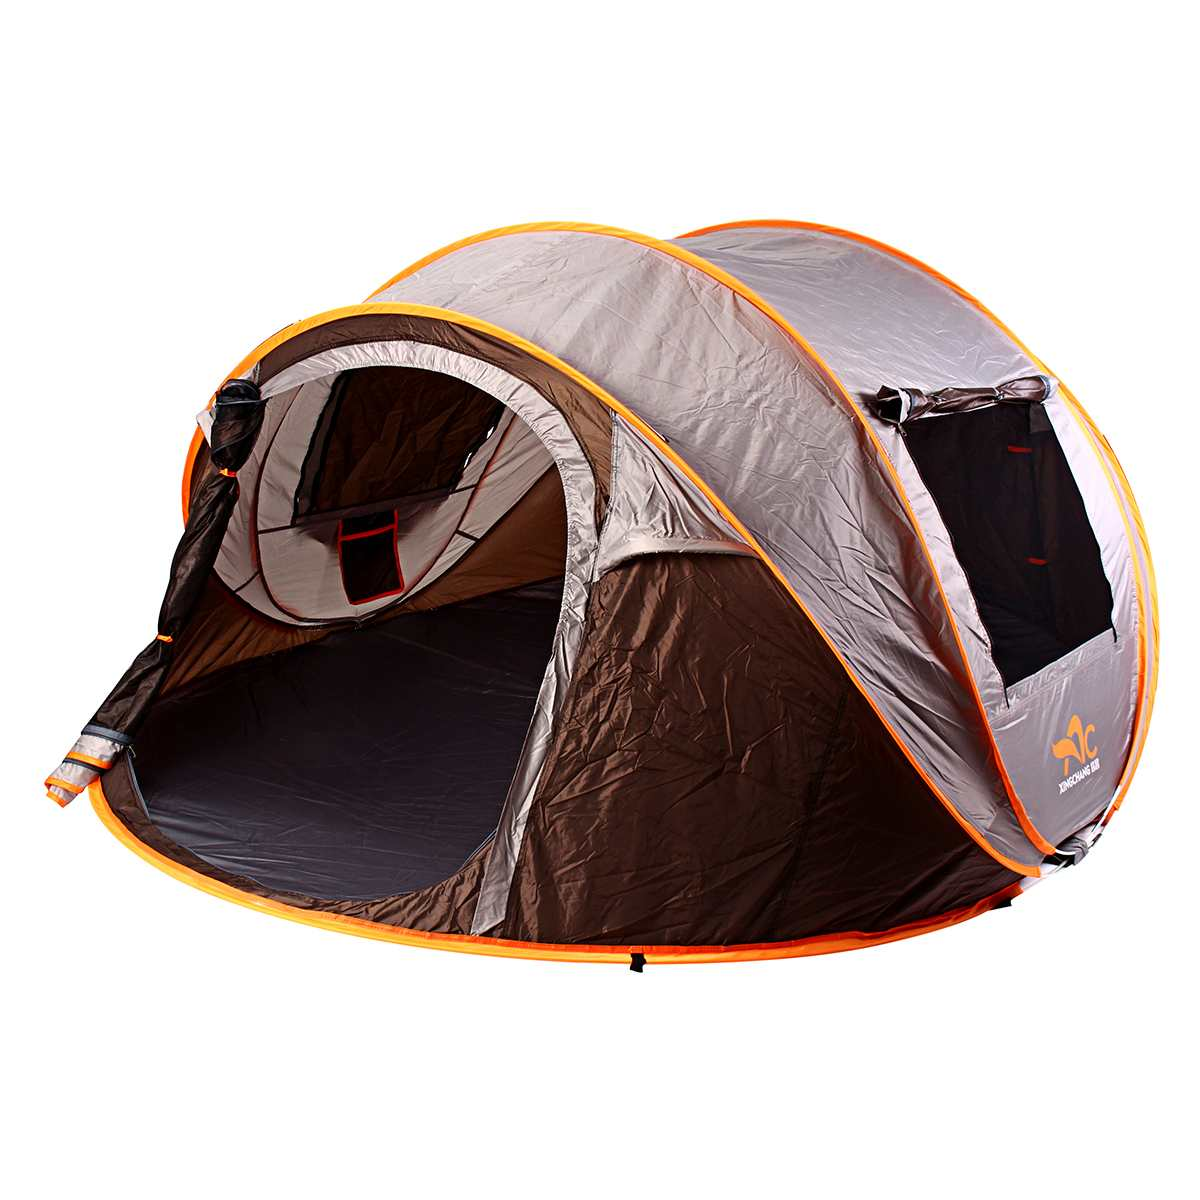 Instant Auto Open Tent 5-6 Person Family Portable Waterproof Camping Tent Outdoor Backpacking Fishing Accessories FoldableInstant Auto Open Tent 5-6 Person Family Portable Waterproof Camping Tent Outdoor Backpacking Fishing Accessories Foldable